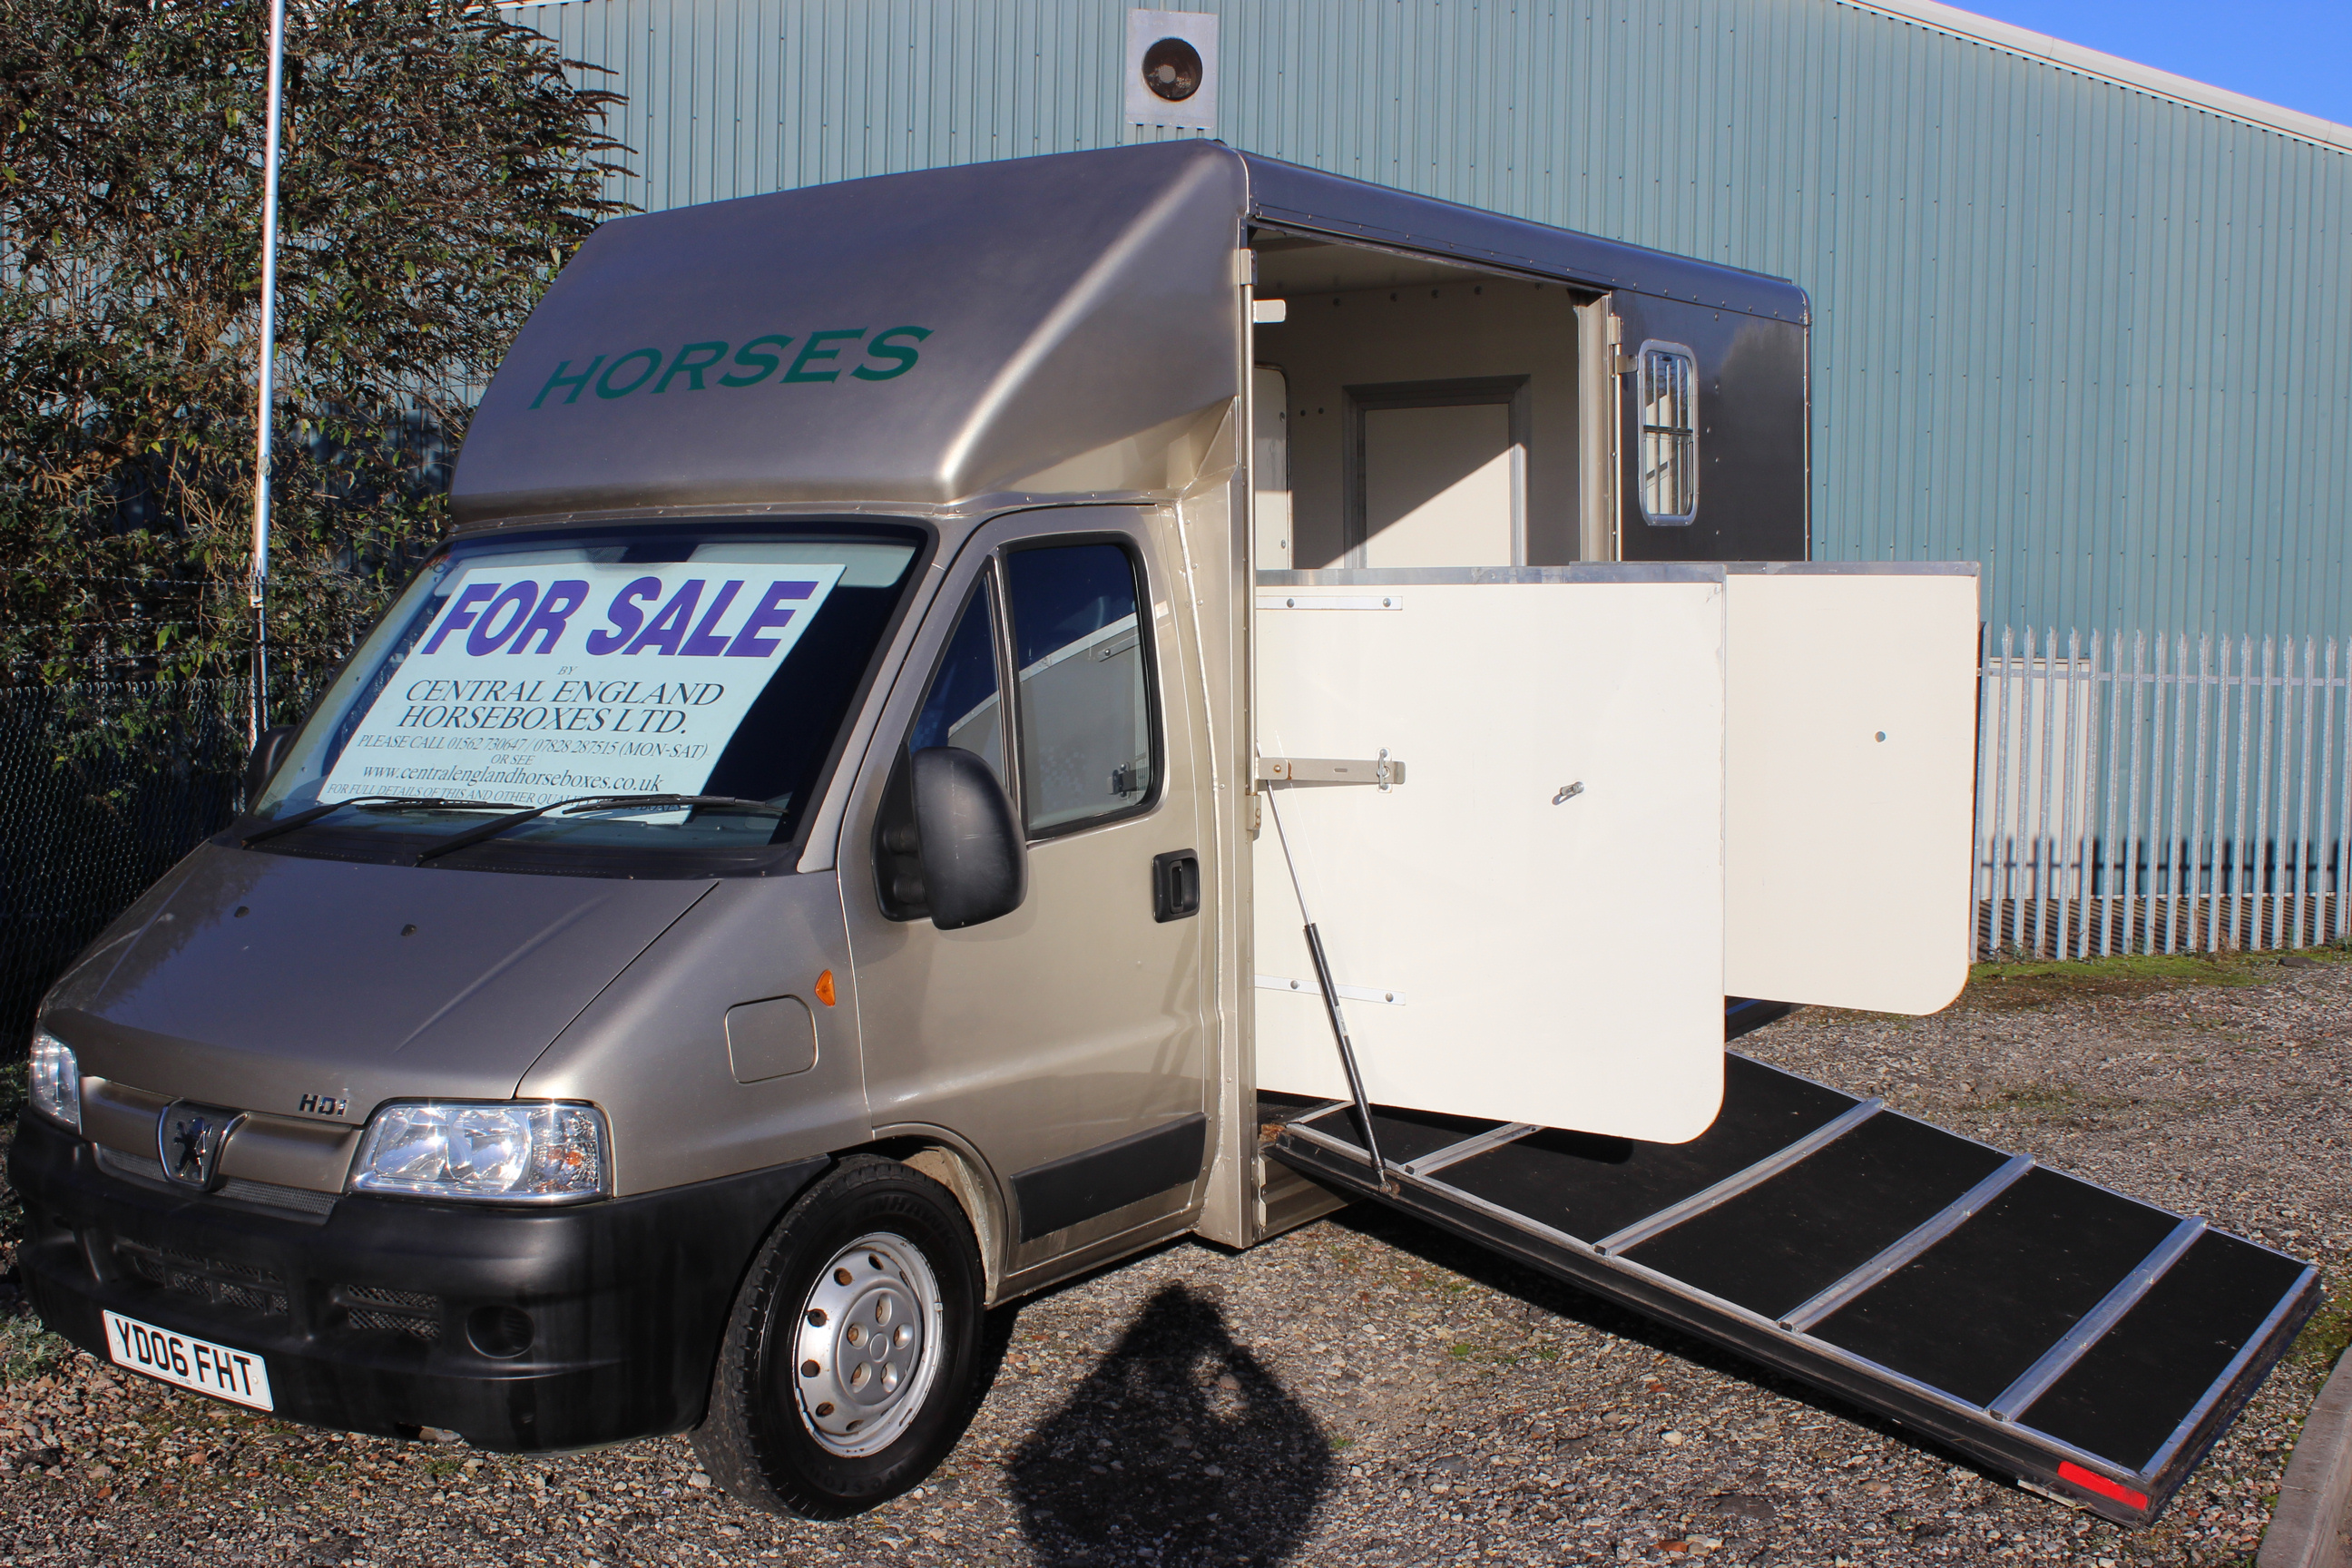 2006 Peugeot hdi 3.5t horsebox for sale central england ...